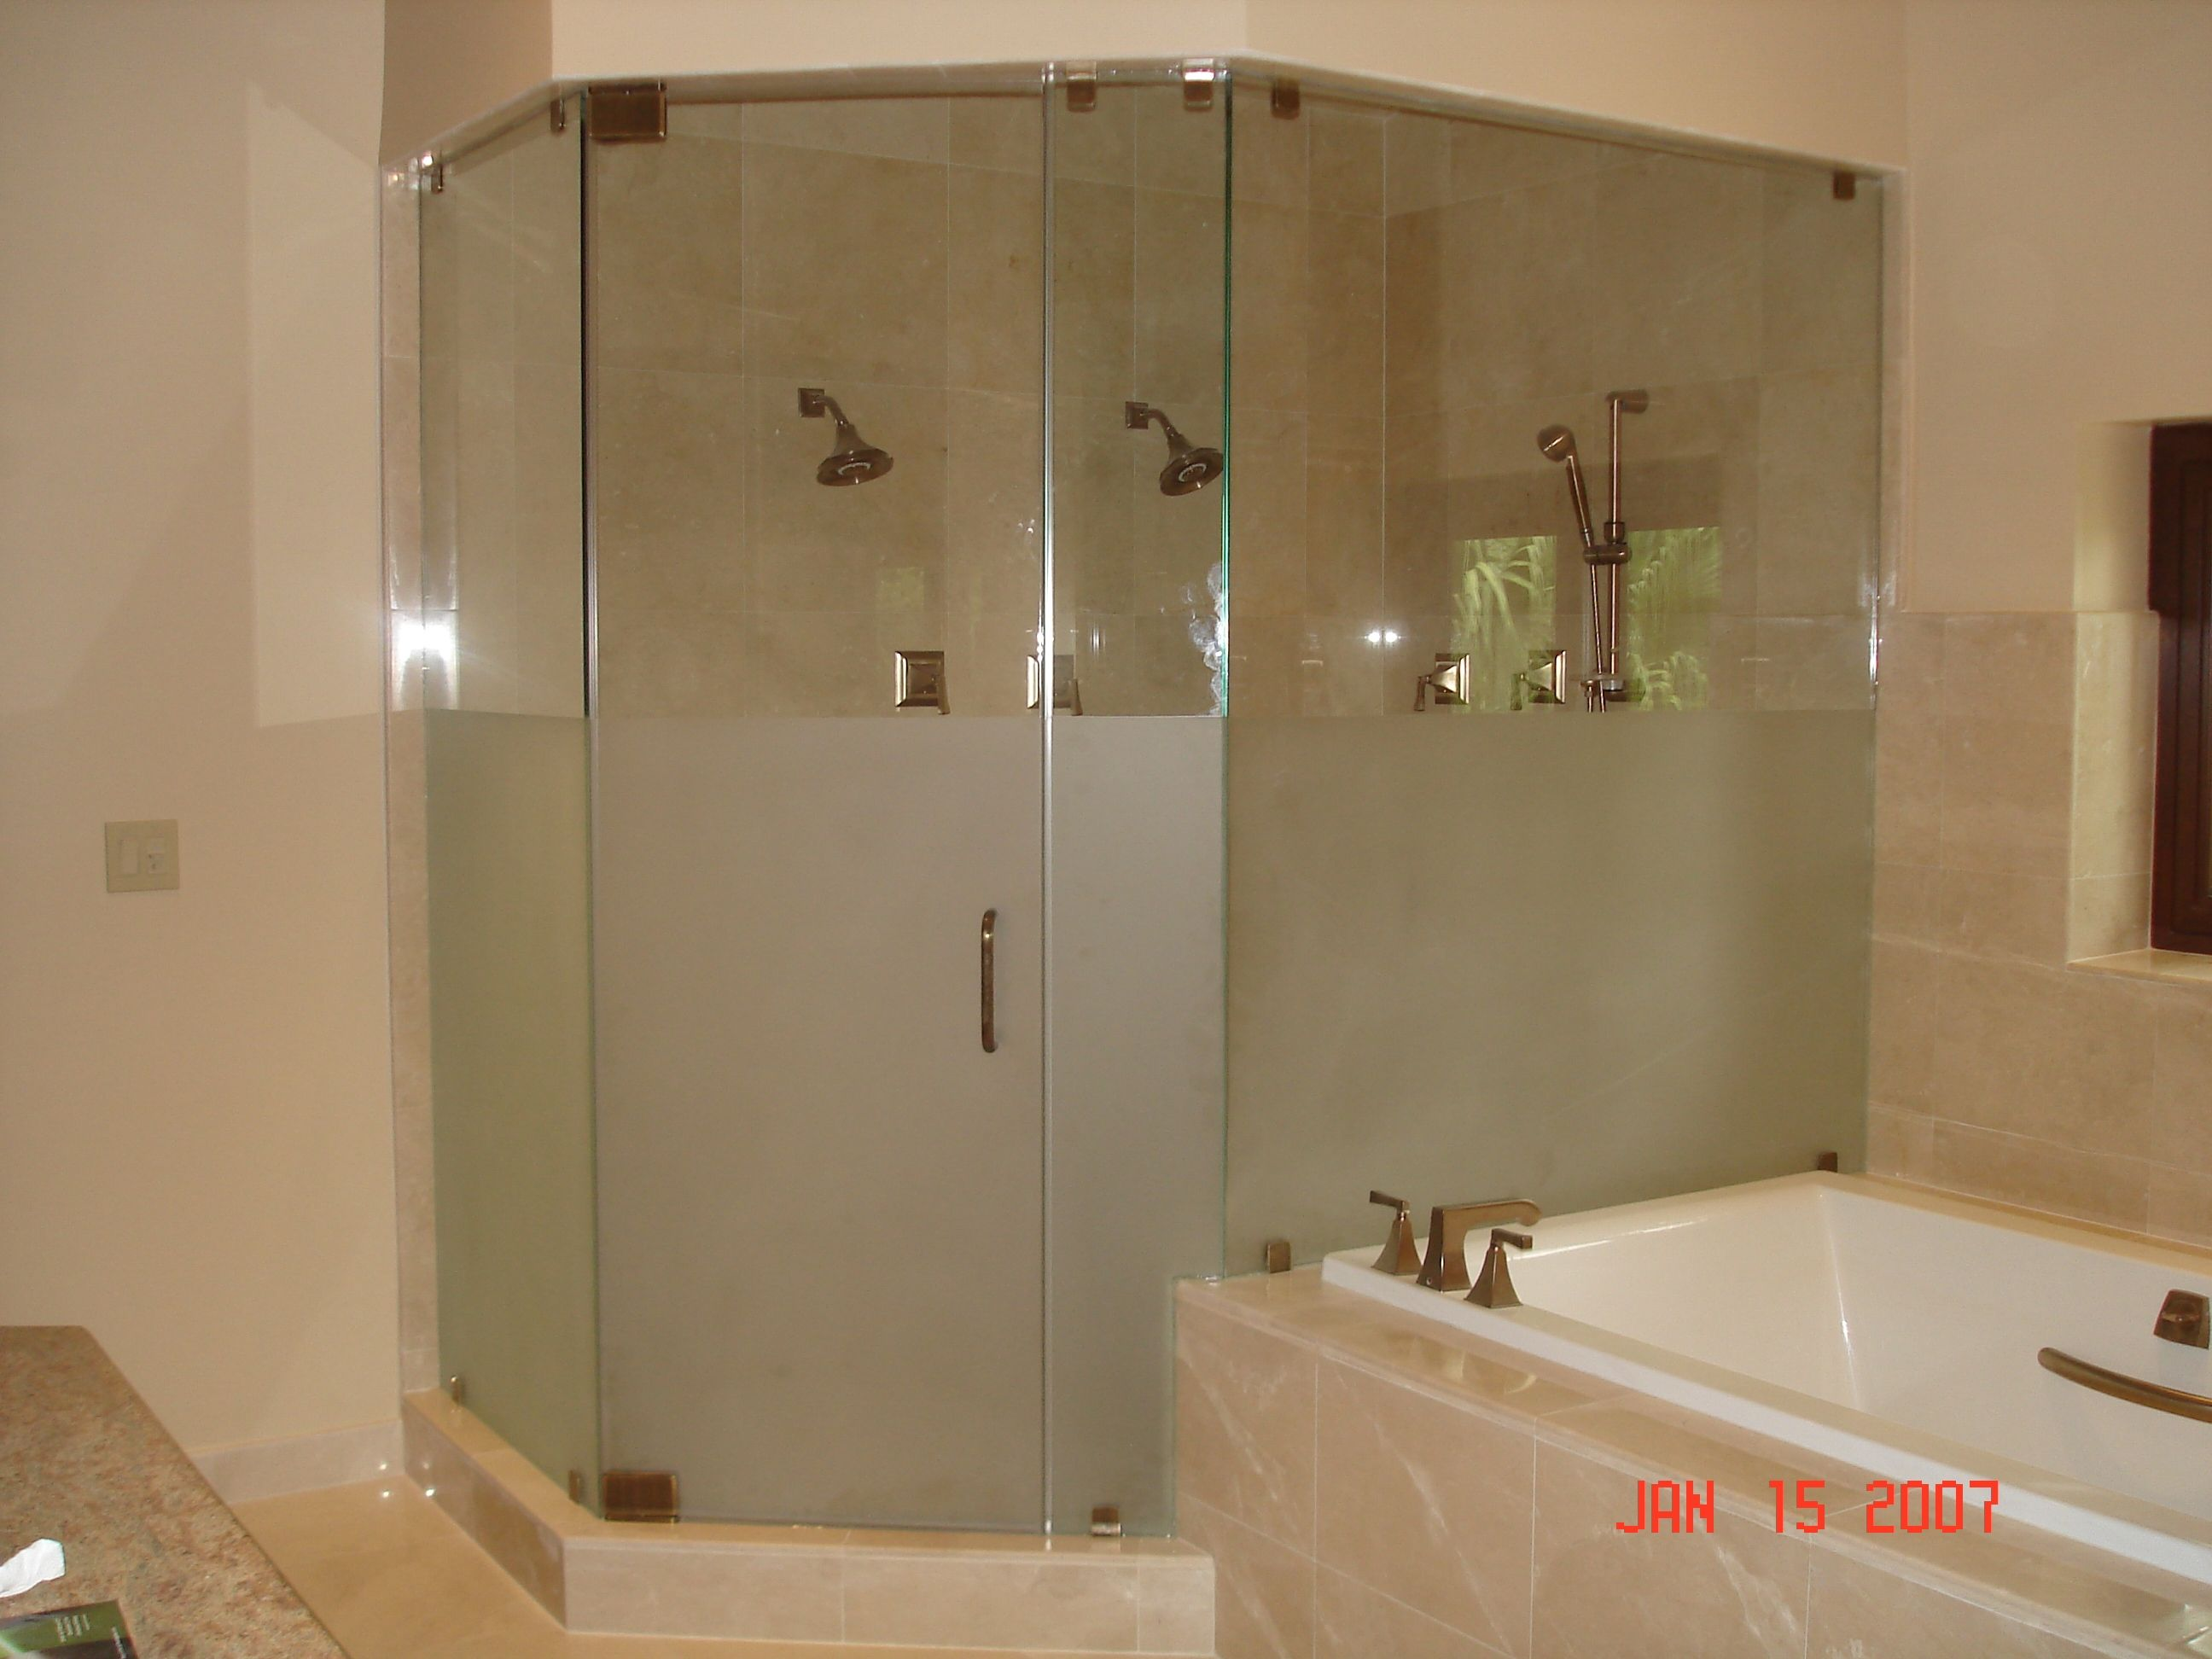 Frosted Shower Doors Vs Clear Glass Shower Doors Frosted Shower